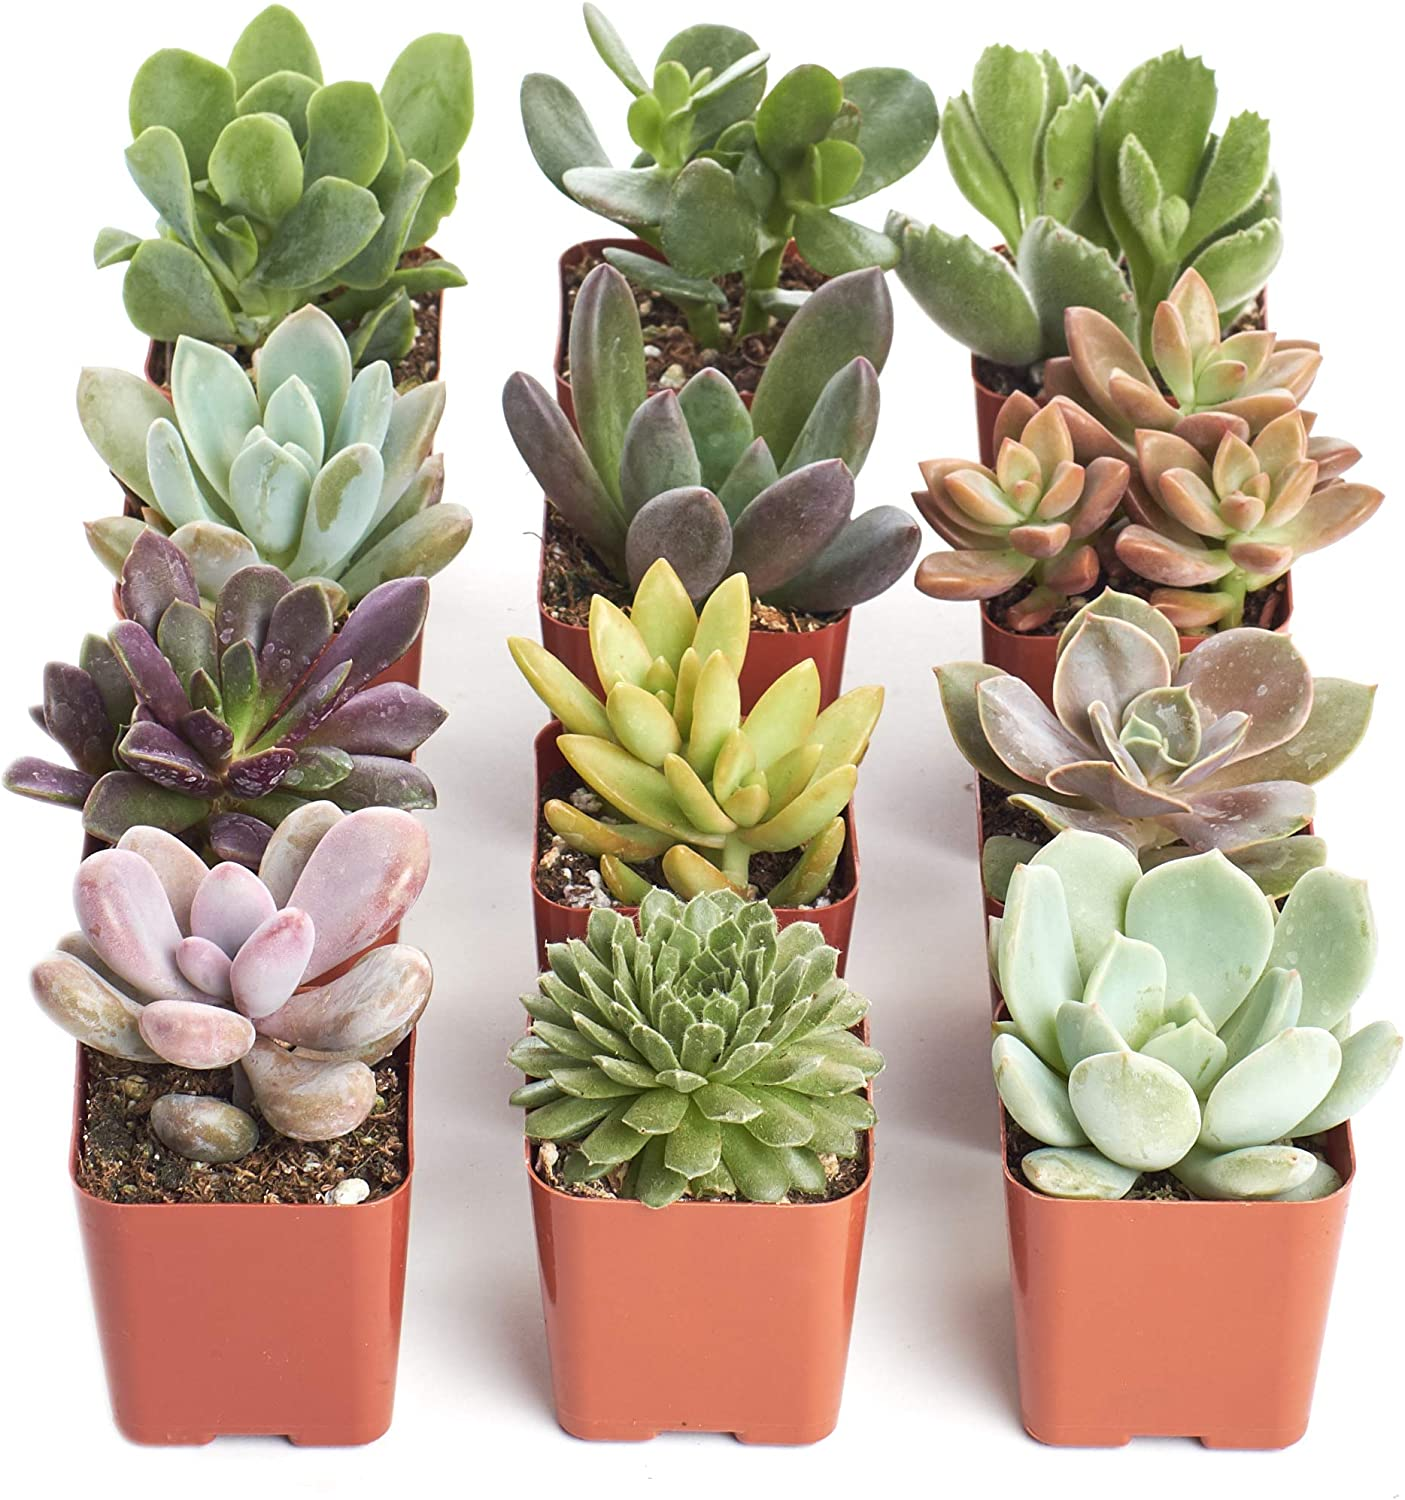 Shop Succulents | Unique Collection | Assortment of Hand Selected, Fully Rooted Live Indoor Succulent Plants, 12-Pack